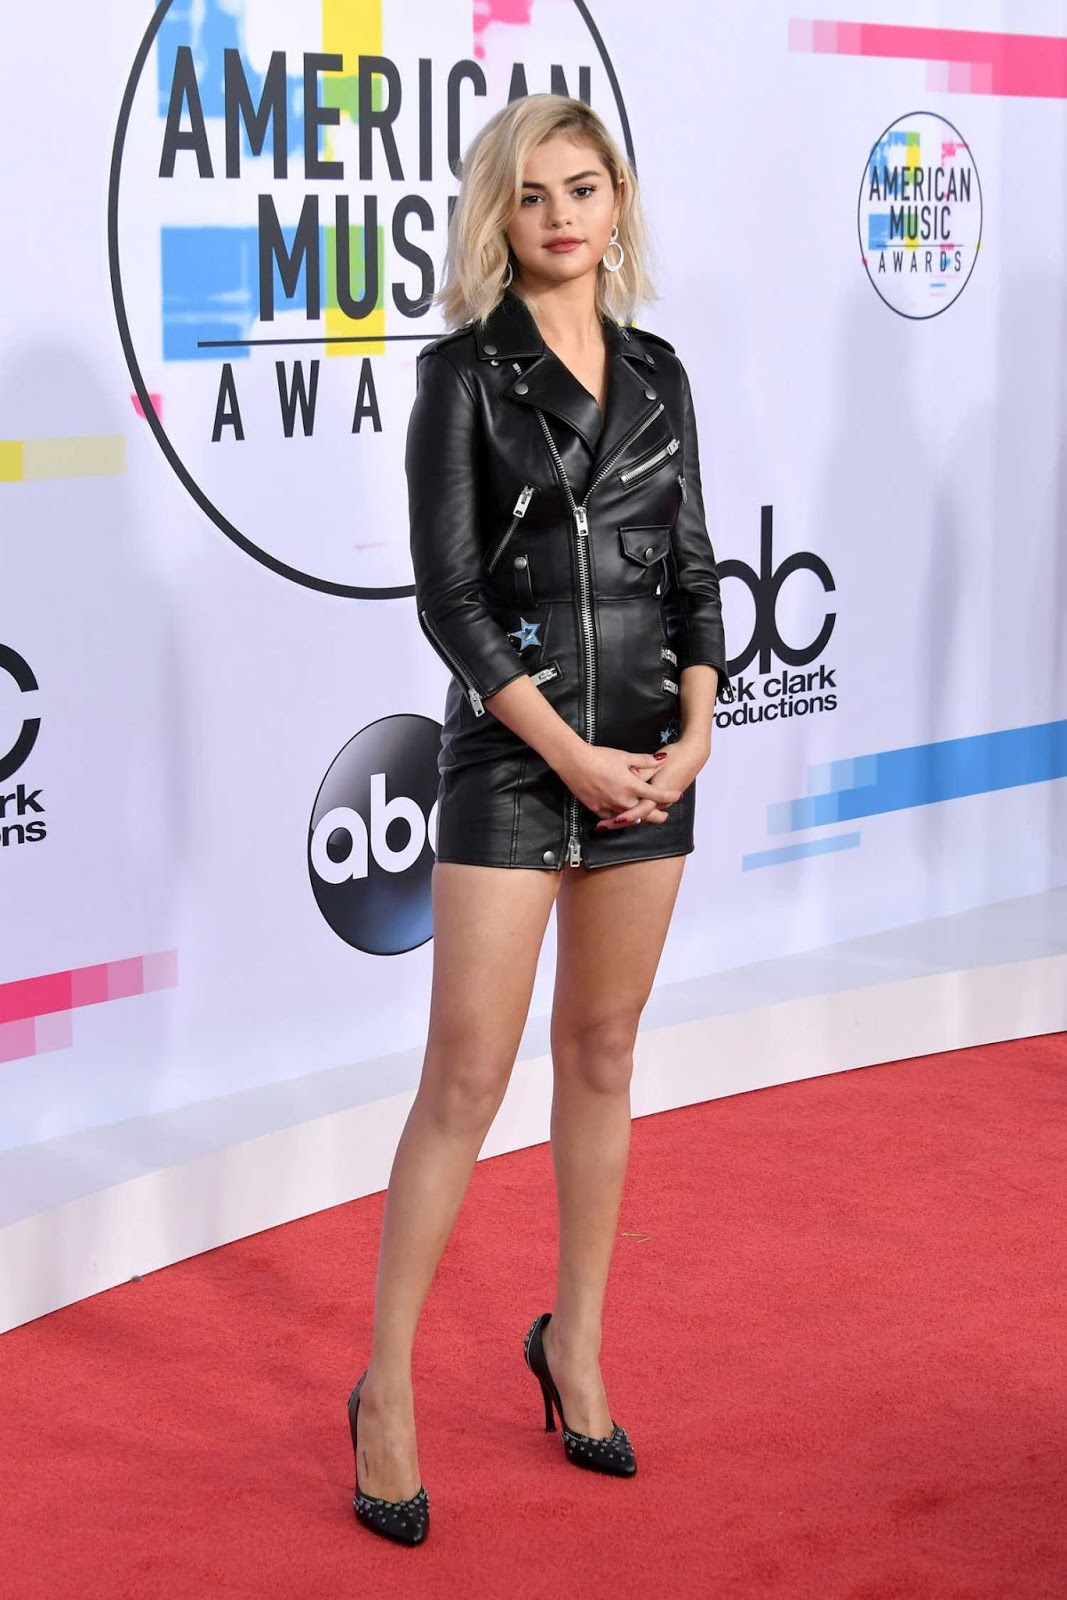 Selena Gomez goes blonde and arrives in leather to the 2017 AMAs